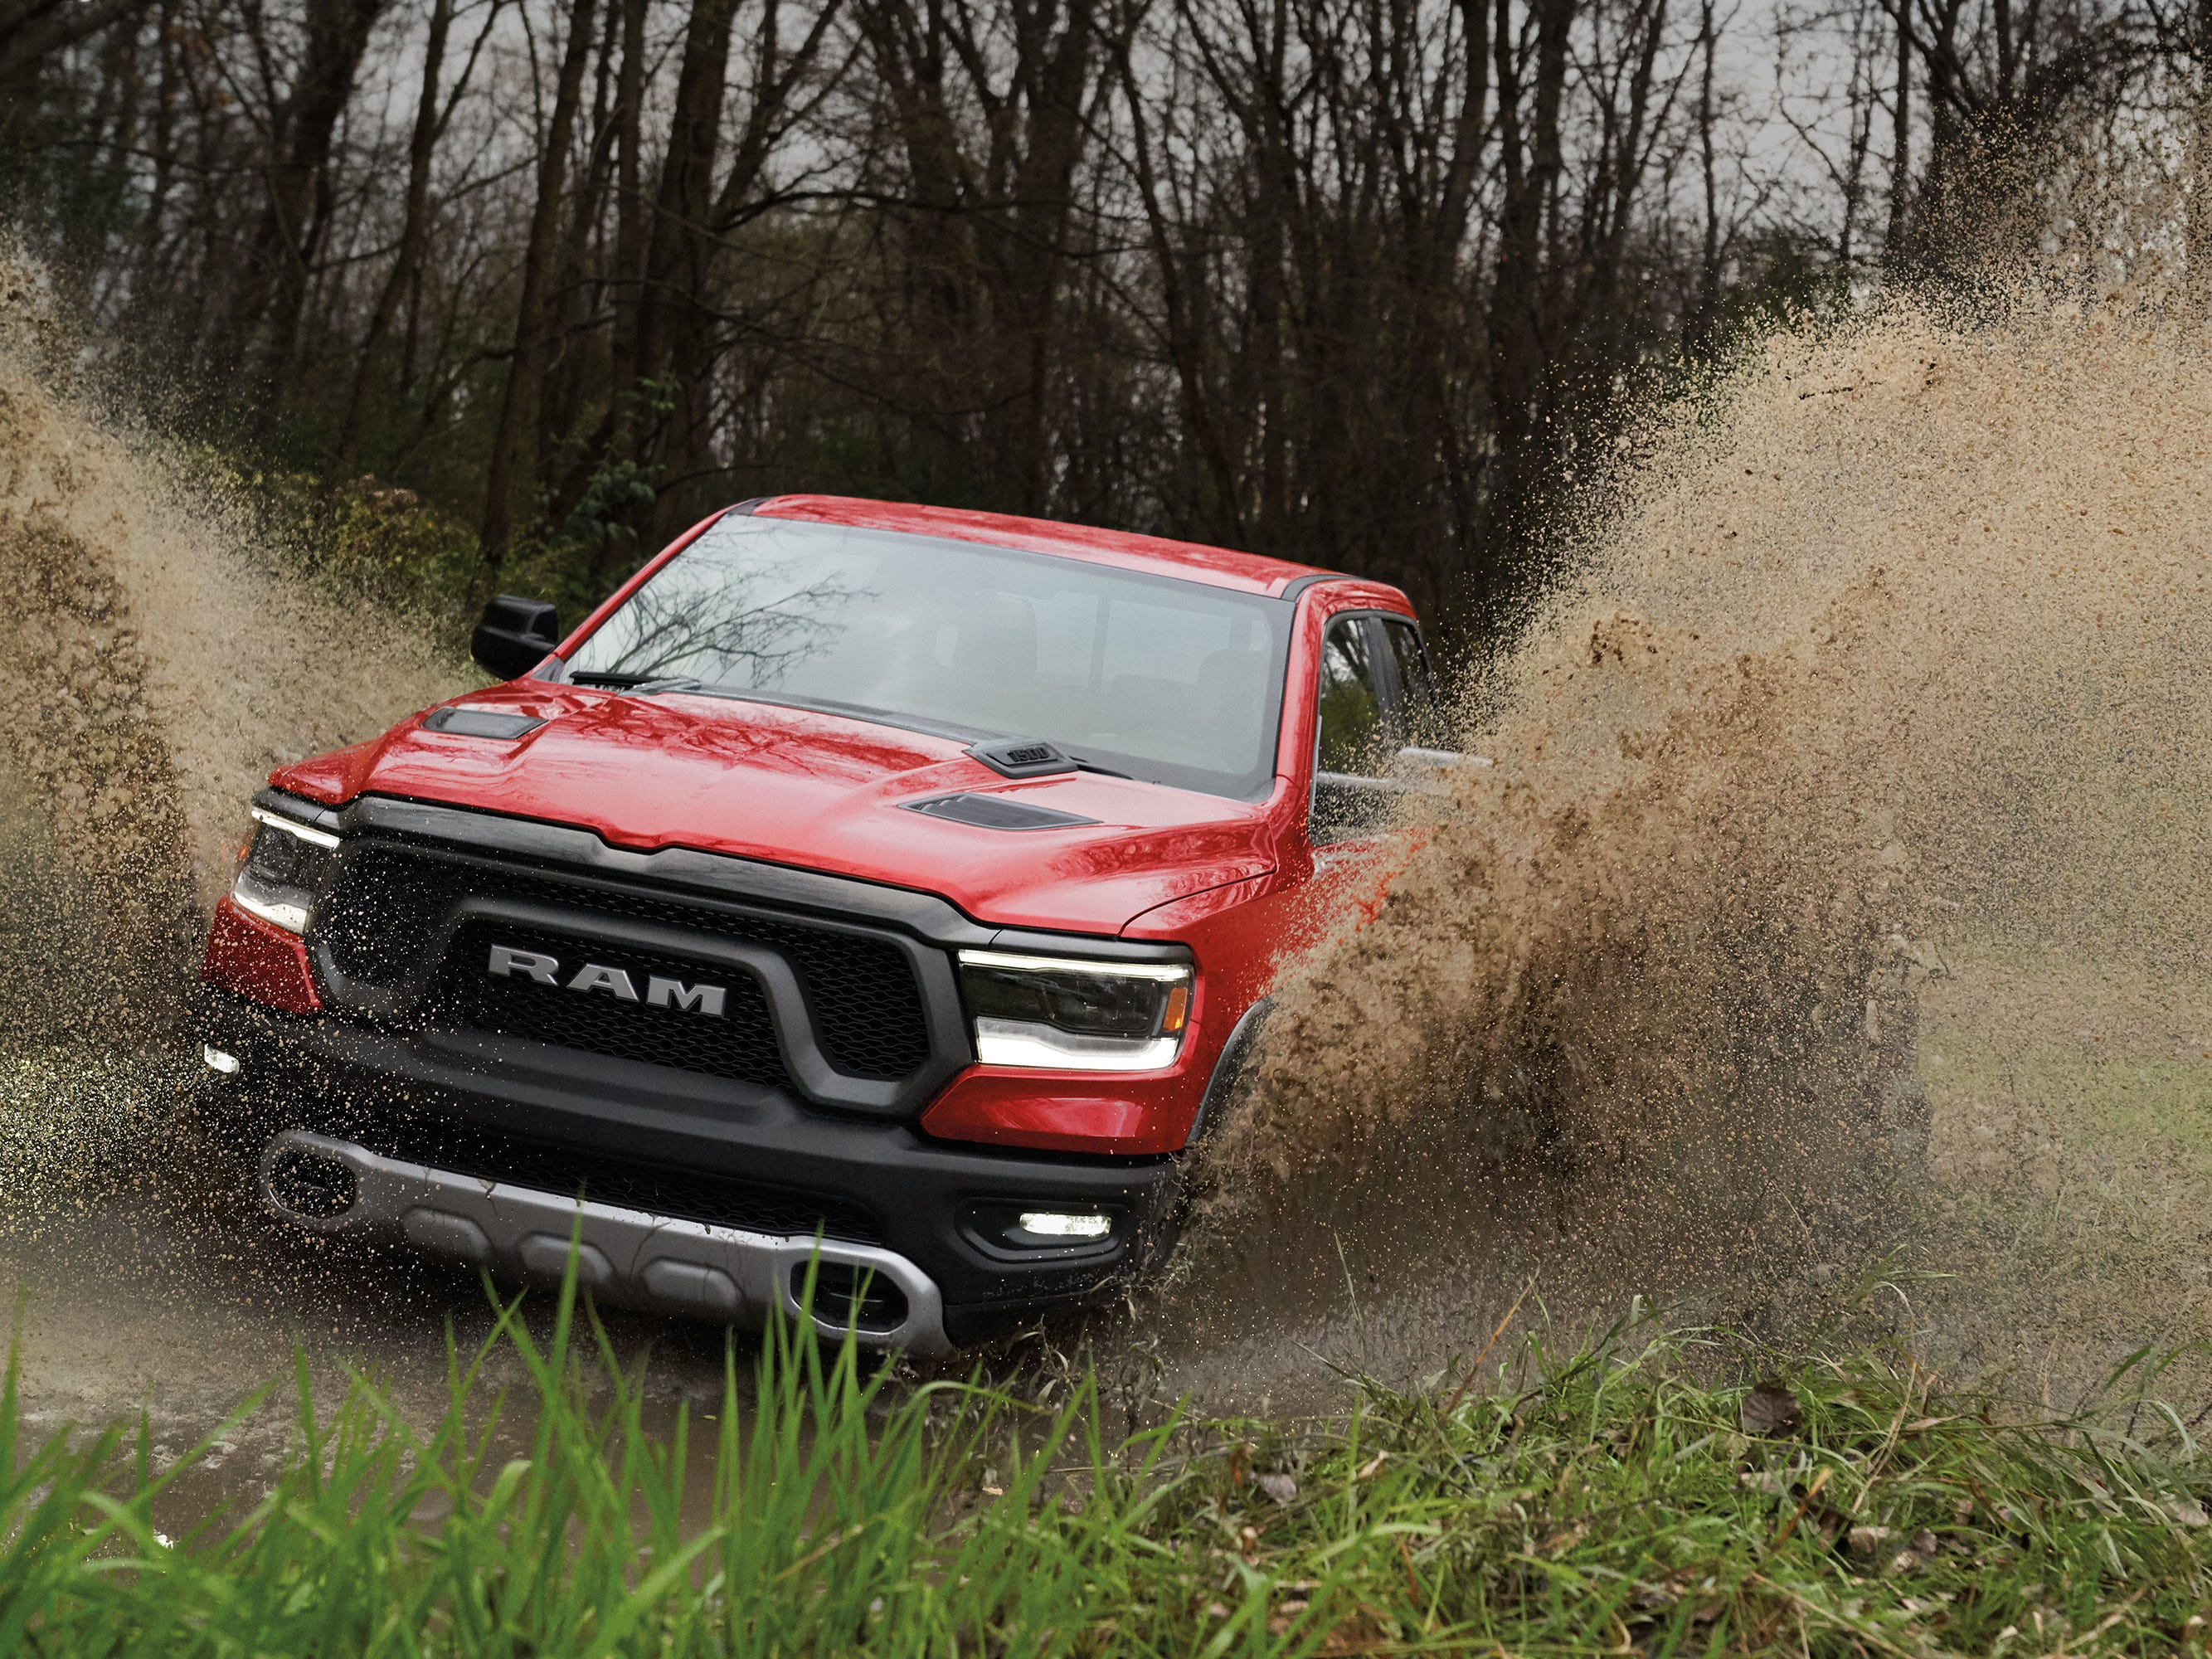 The brutal and extreme tests Ram, Ford, Chevy run on trucks